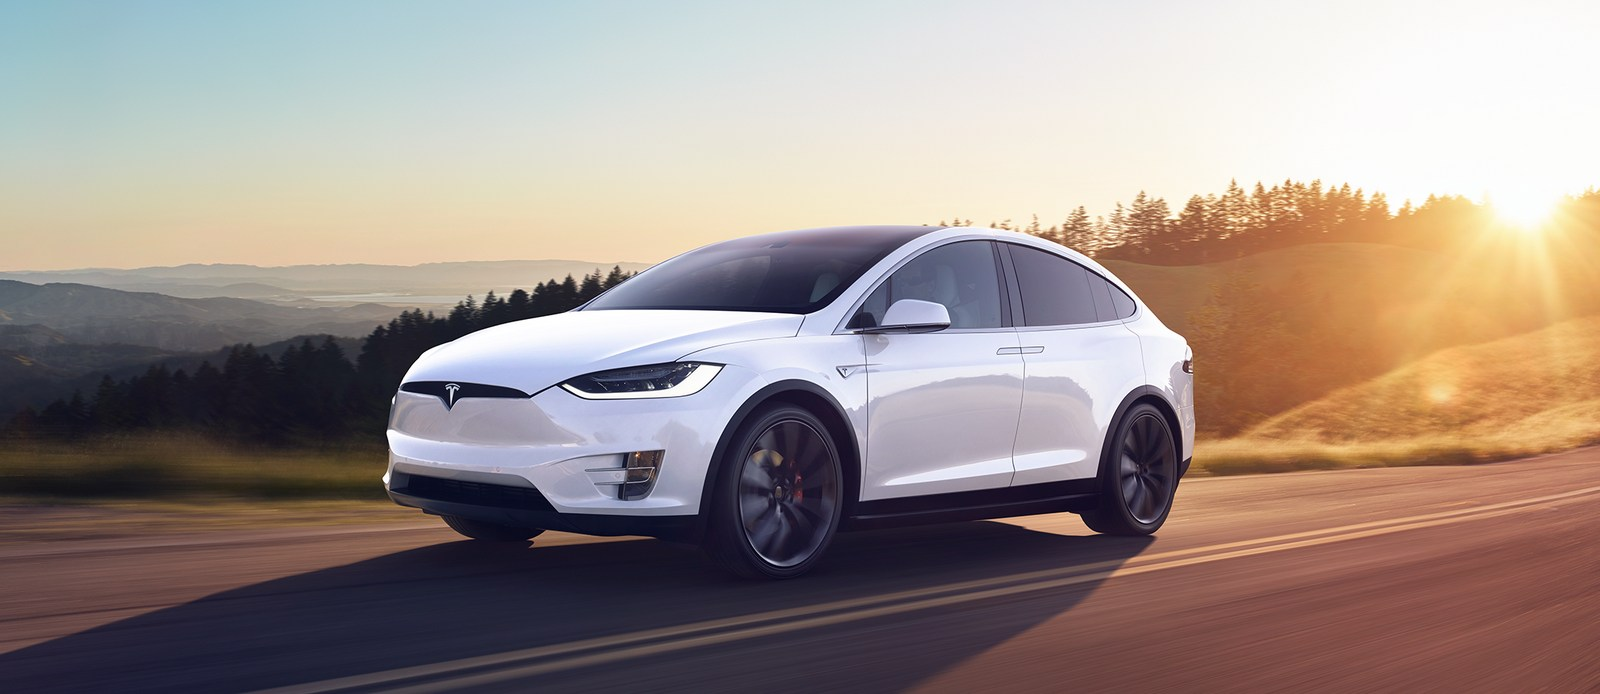 Tesla Upgrades The Model S And Model X Drops 0 60 Mph Time By 1 2 Seconds